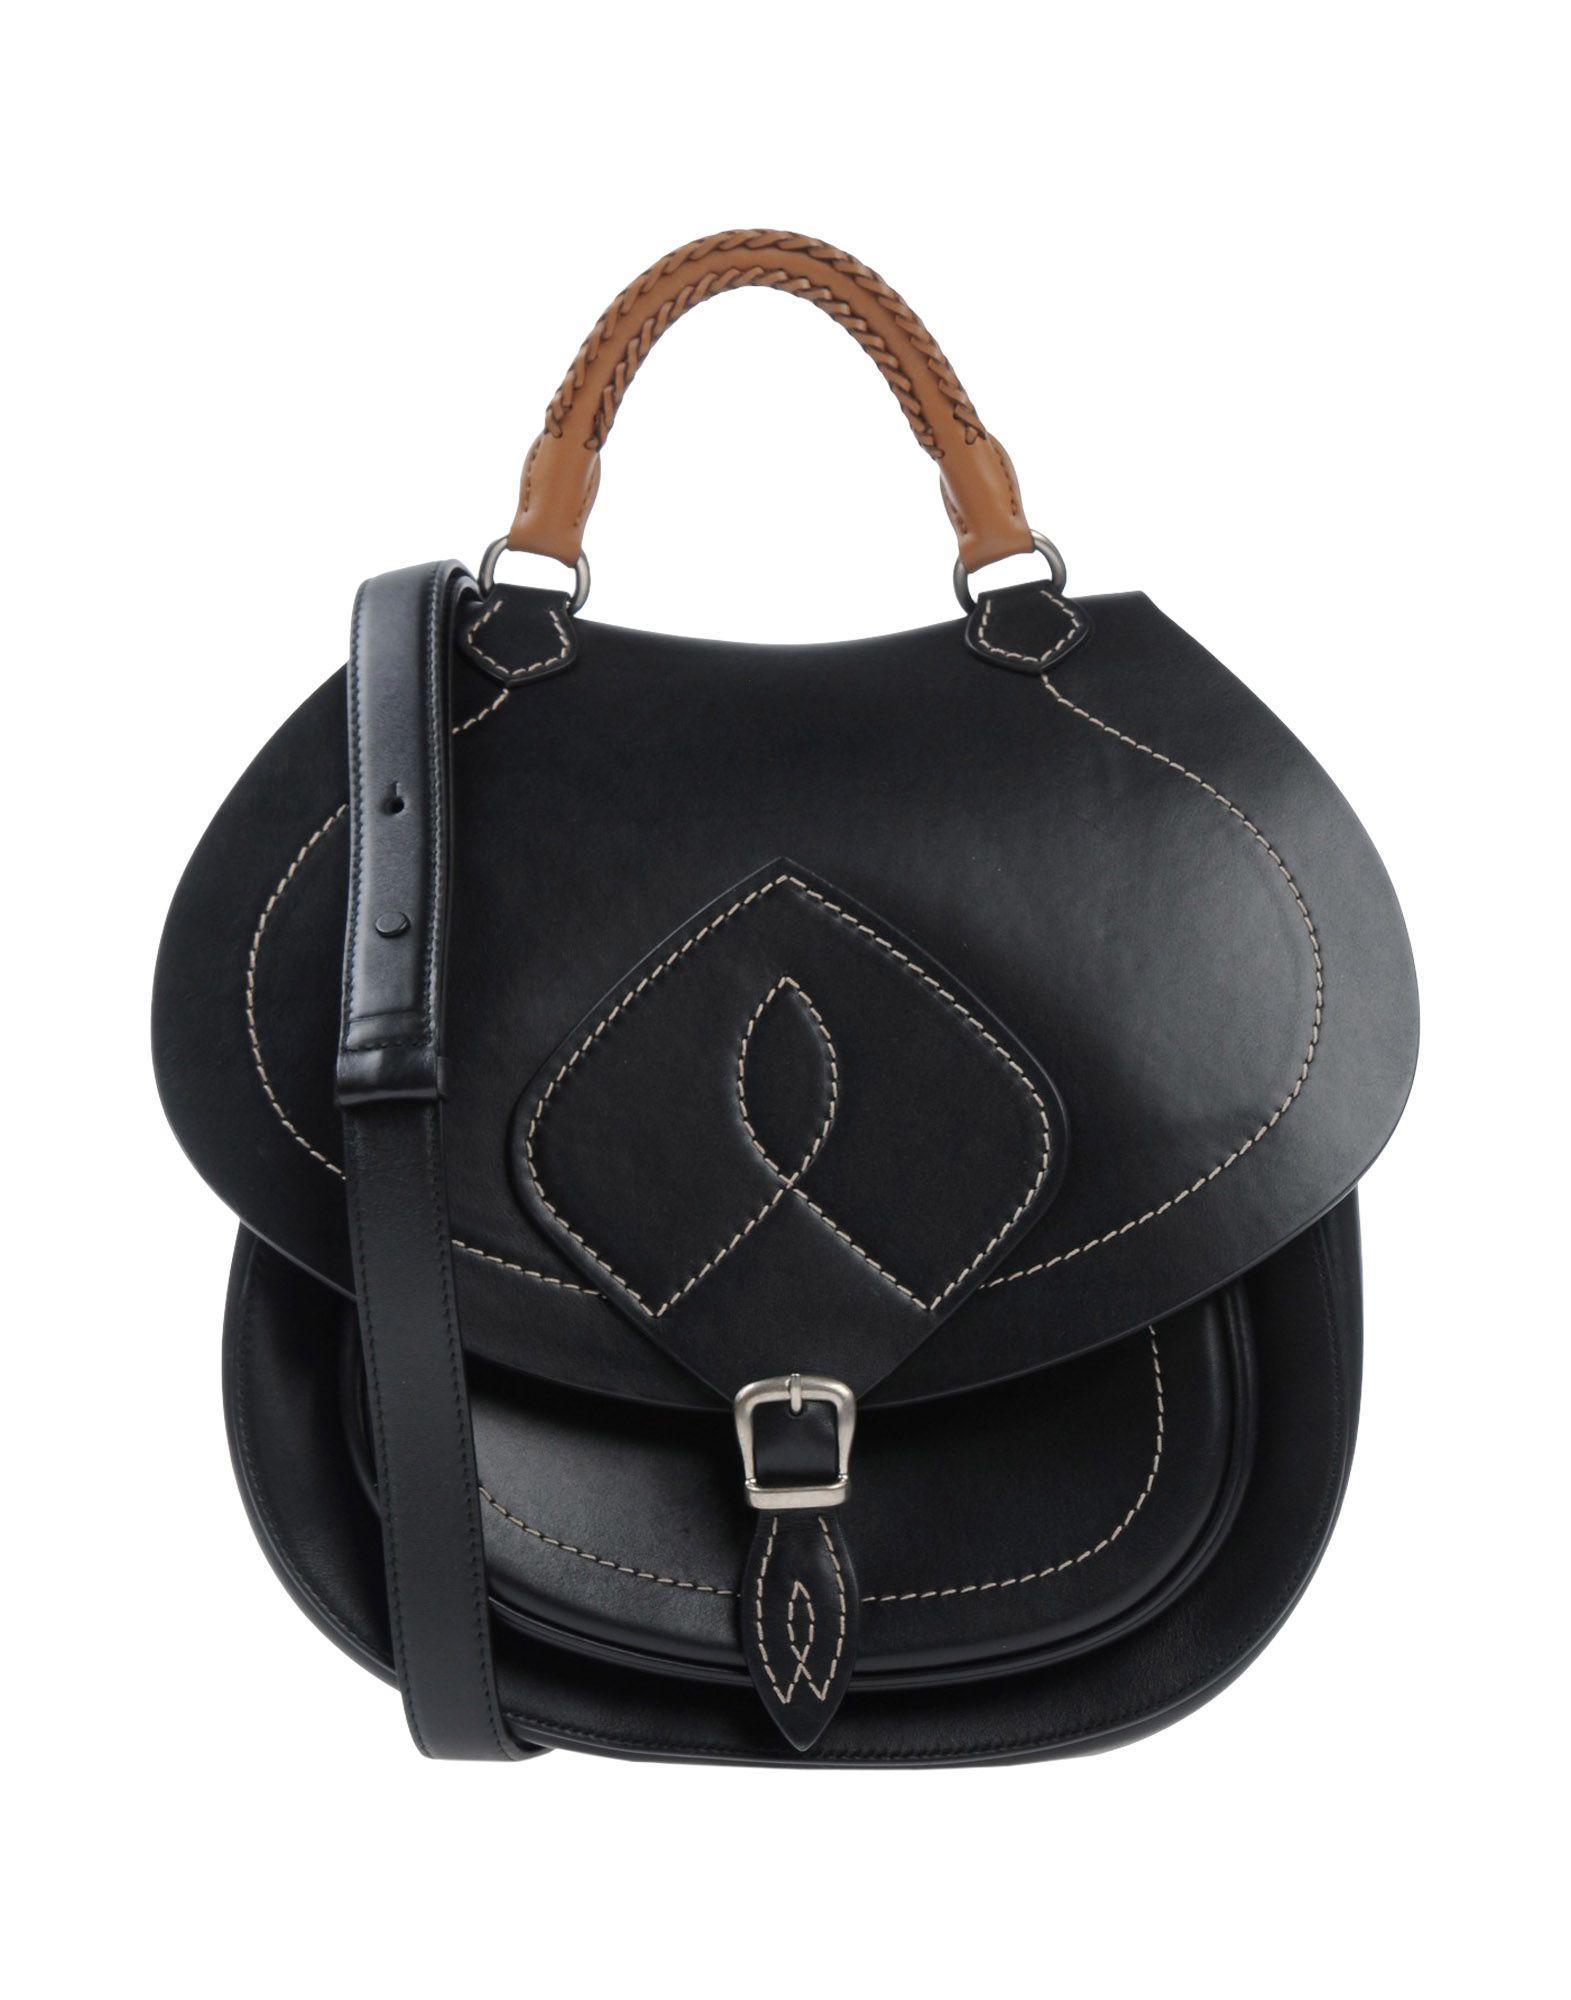 Maison Margiela Handbag In Black